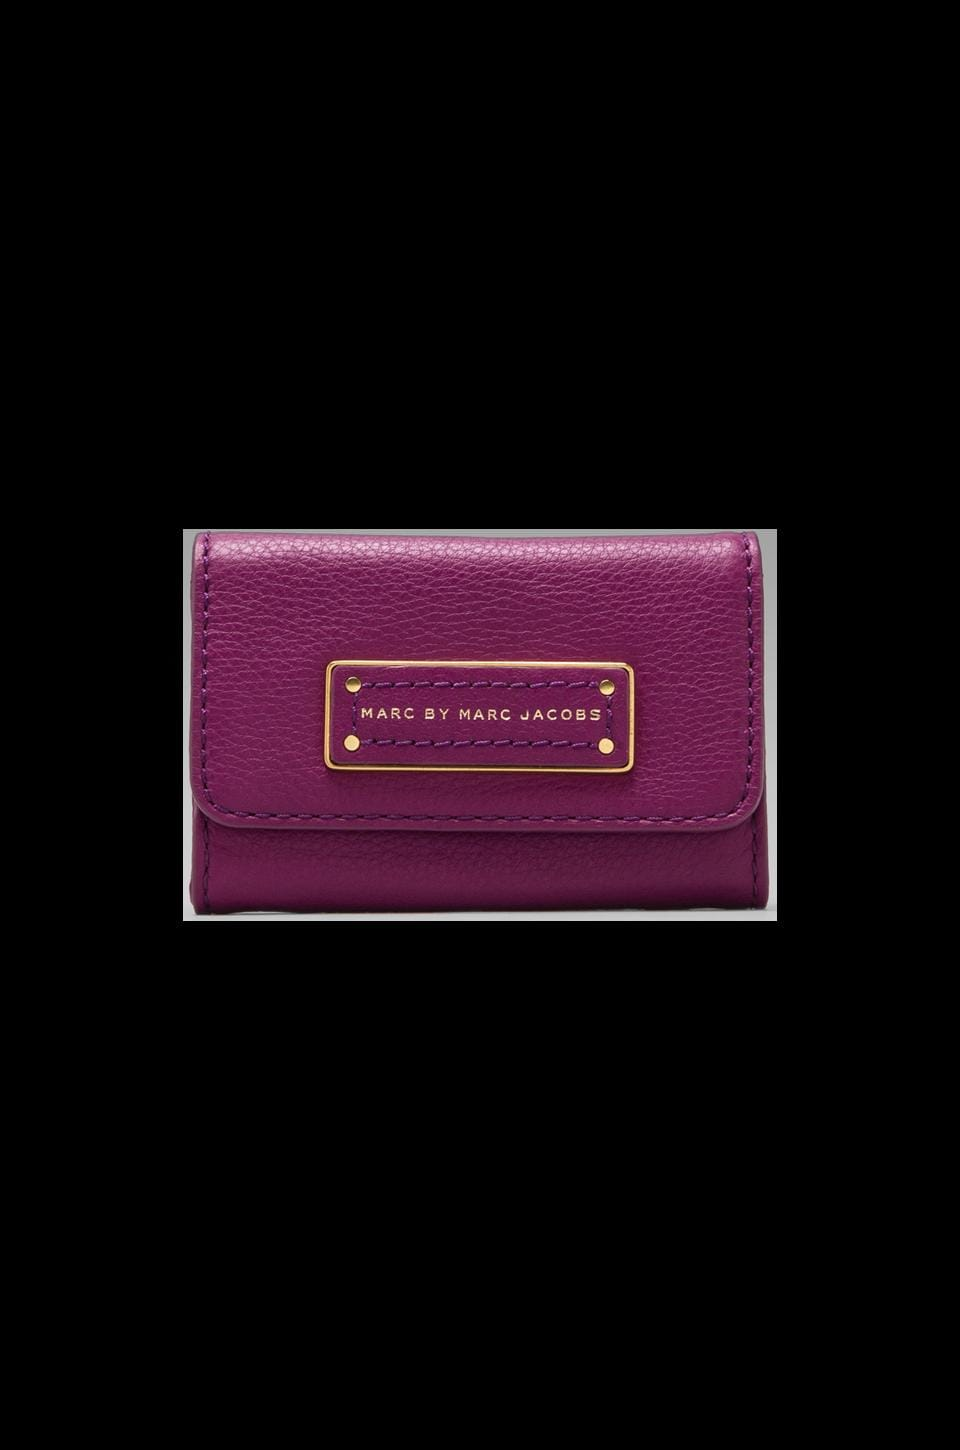 Marc by Marc Jacobs Too Hot to Handle Card Case in Brighter Purple